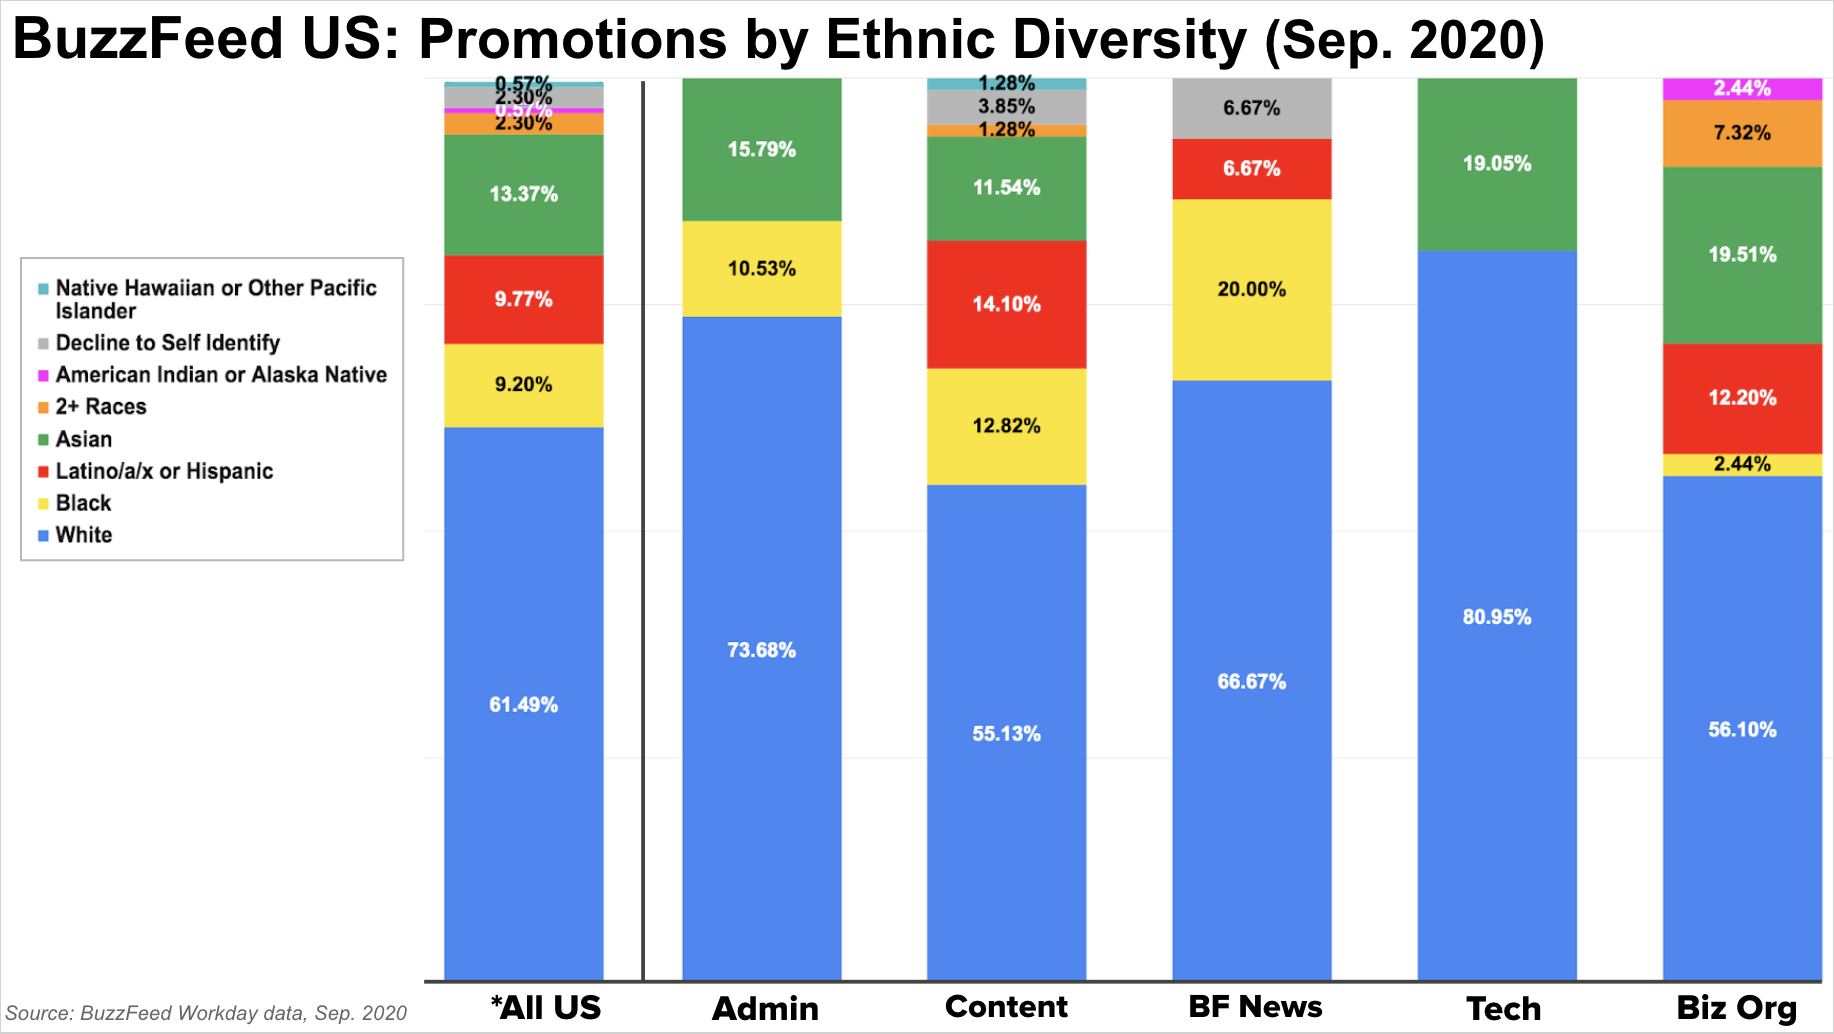 This bar chart depicts BuzzFeed ethnic diversity in promotion rates, based on data from September 2020.